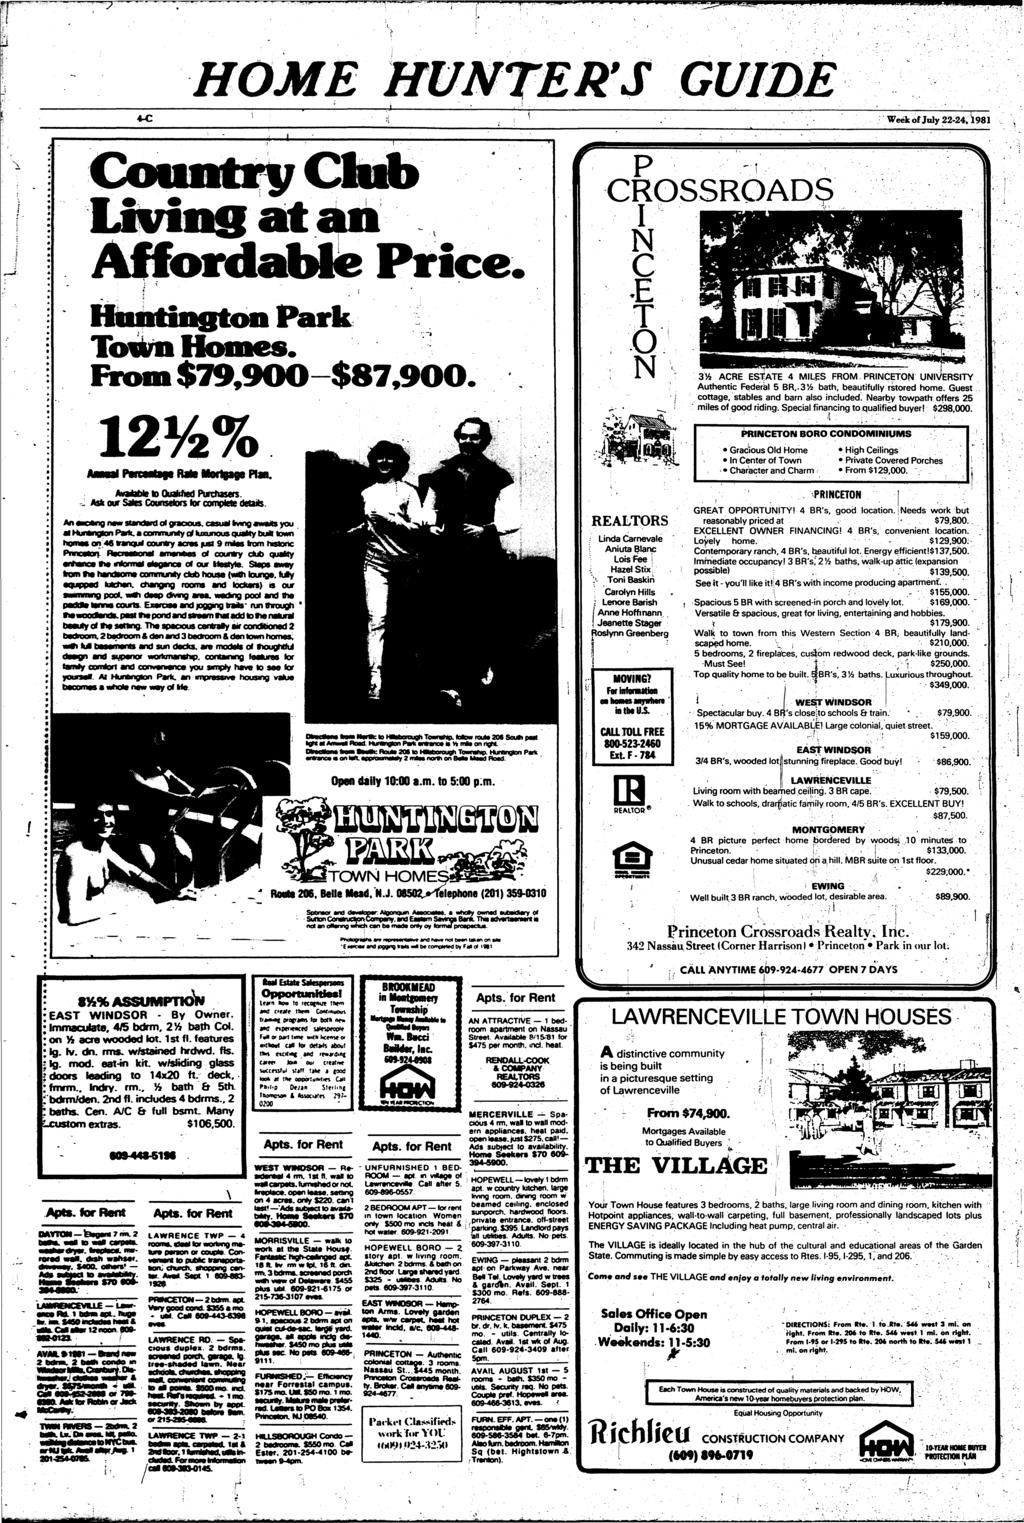 For stores and offices pdf home hunters guide 4 c week of july 22 241981 living fandeluxe Gallery